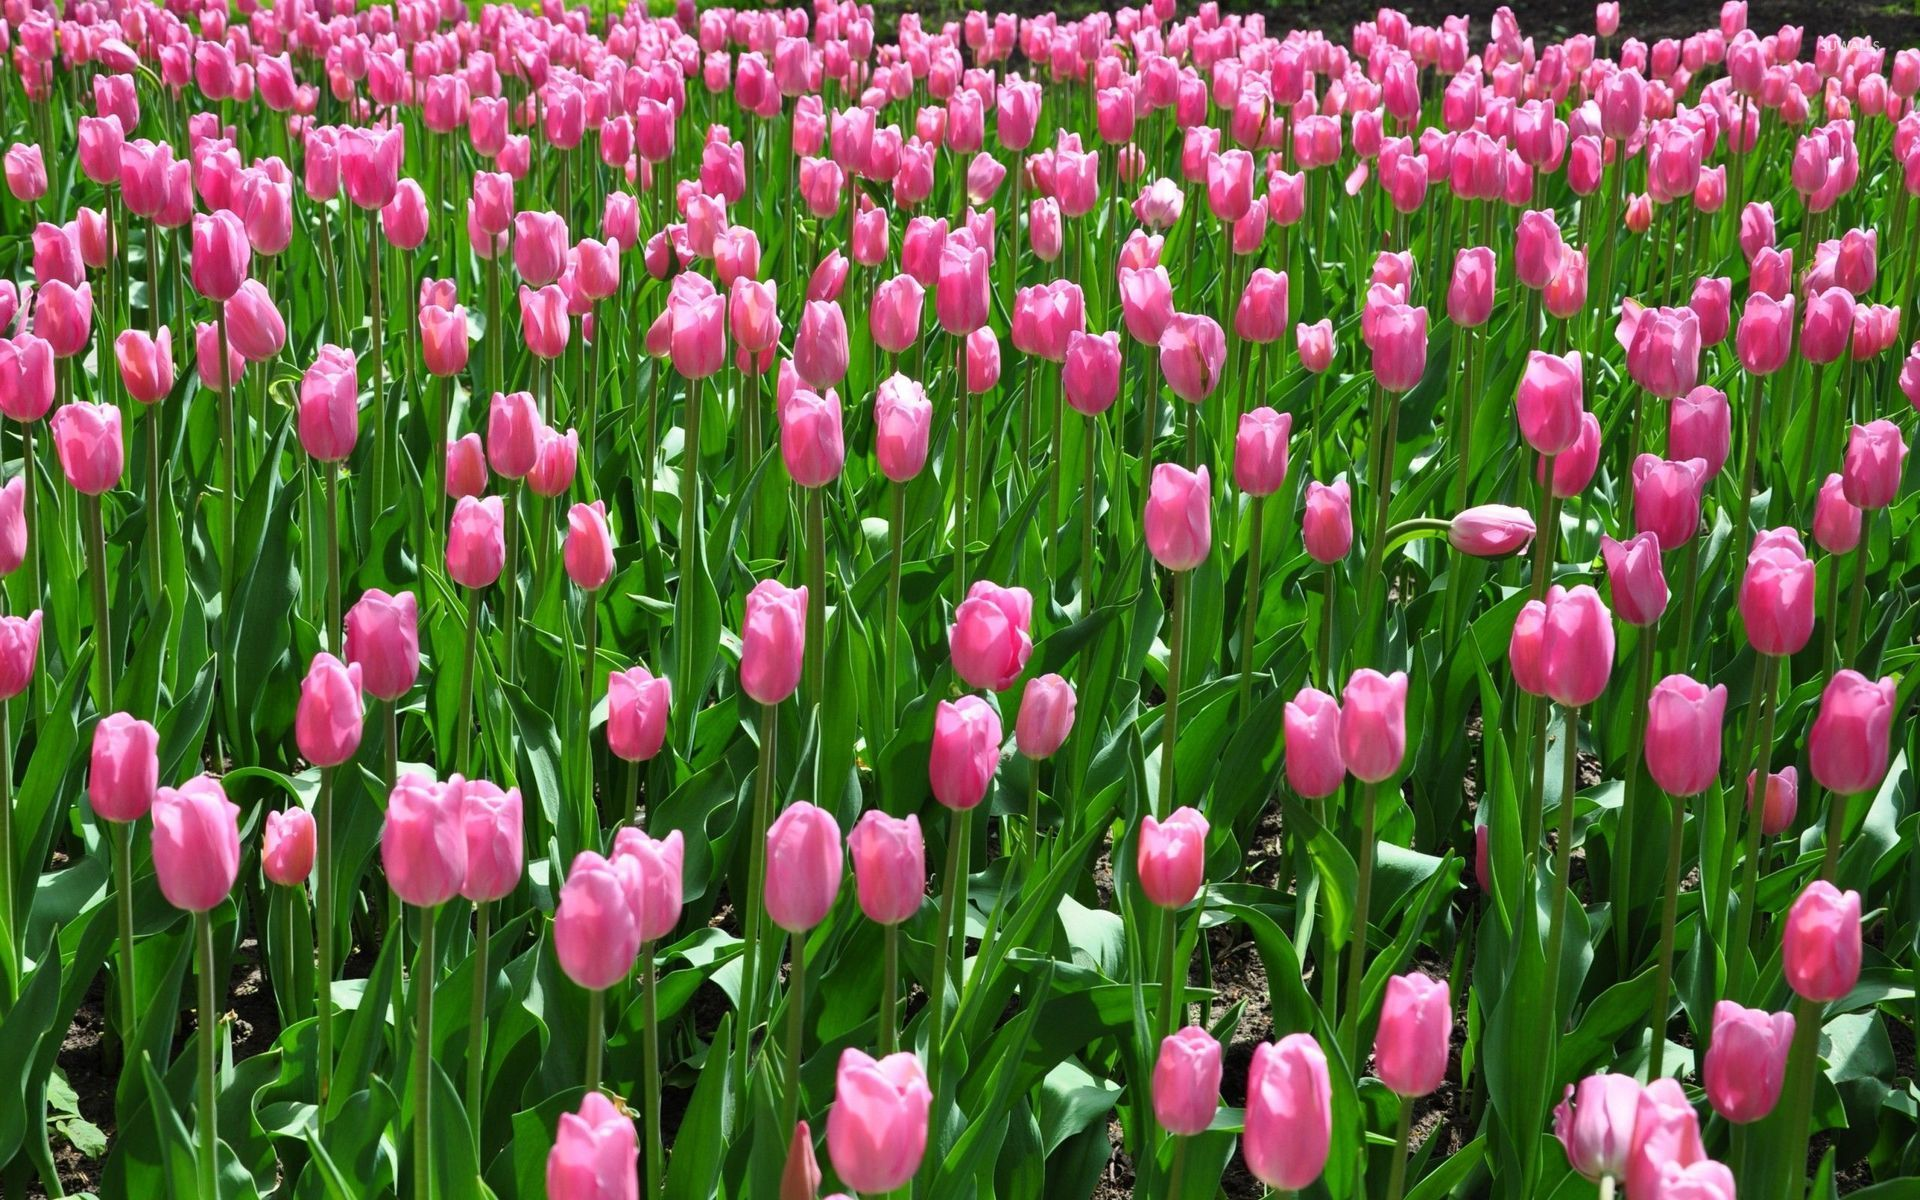 pink tulips on the field wallpaper flower wallpapers